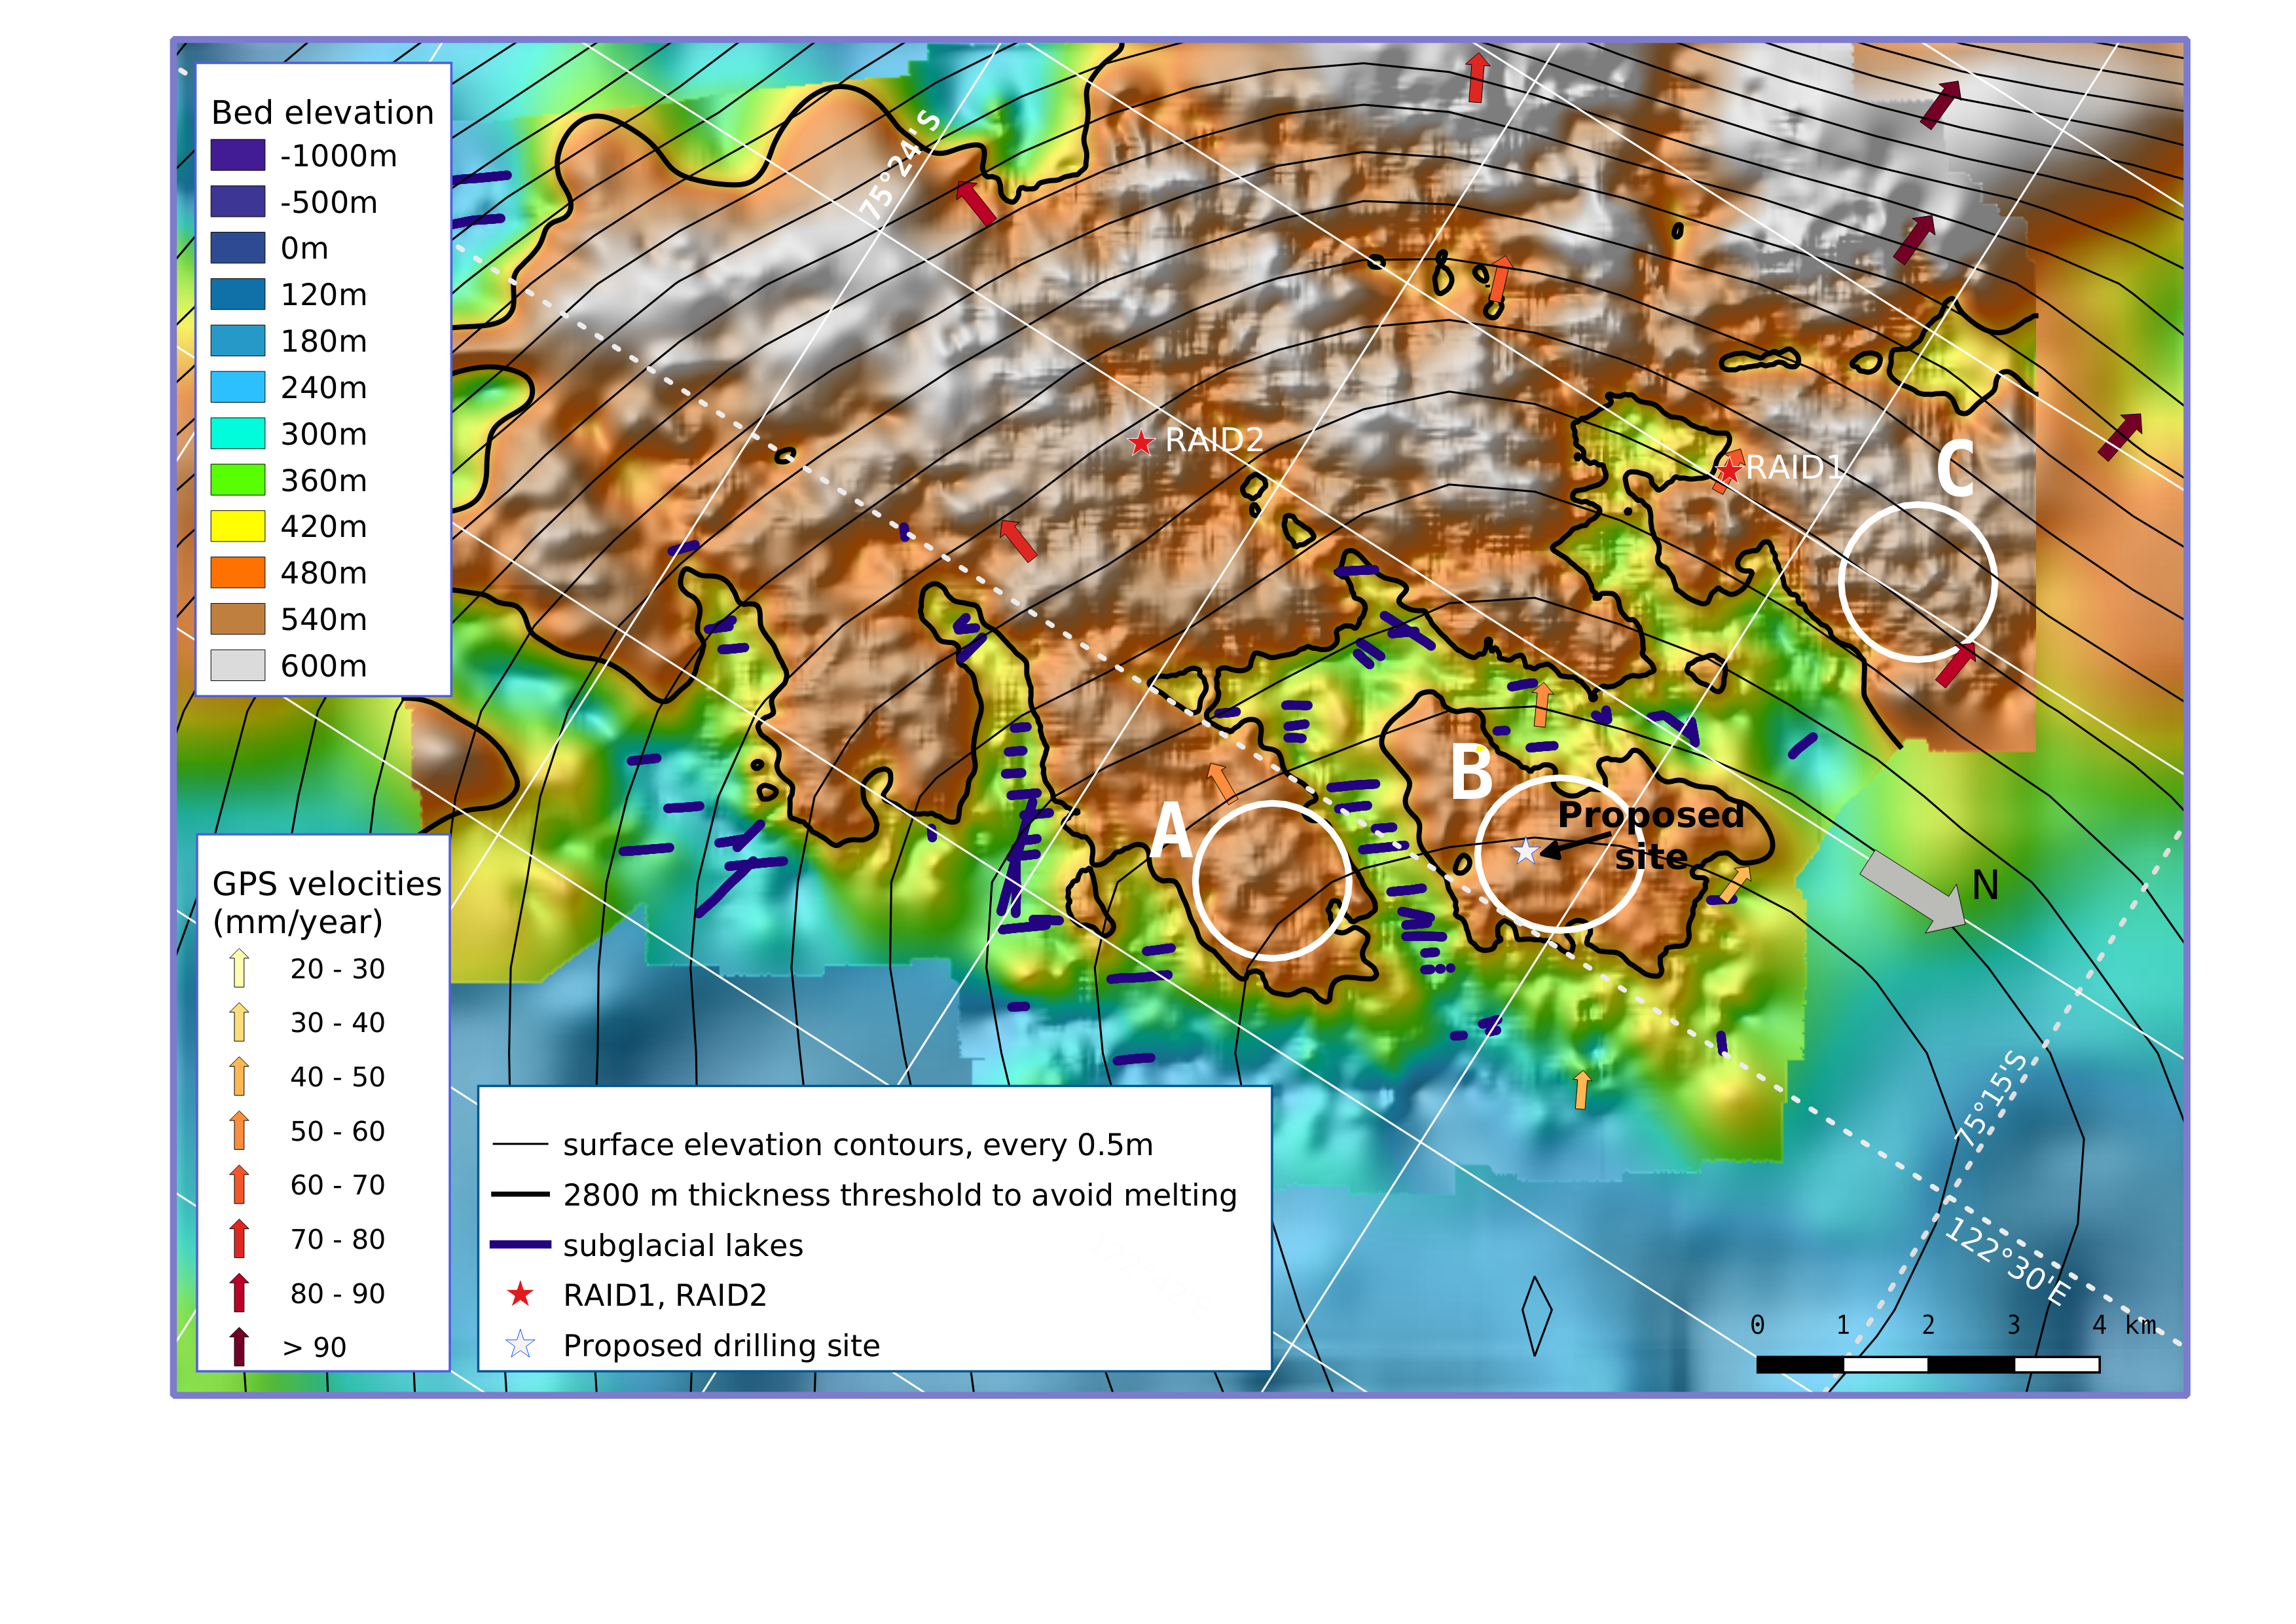 ritz-mulvaney-frezzotti_be-oi_map_ldc_selected-drill-sites.png